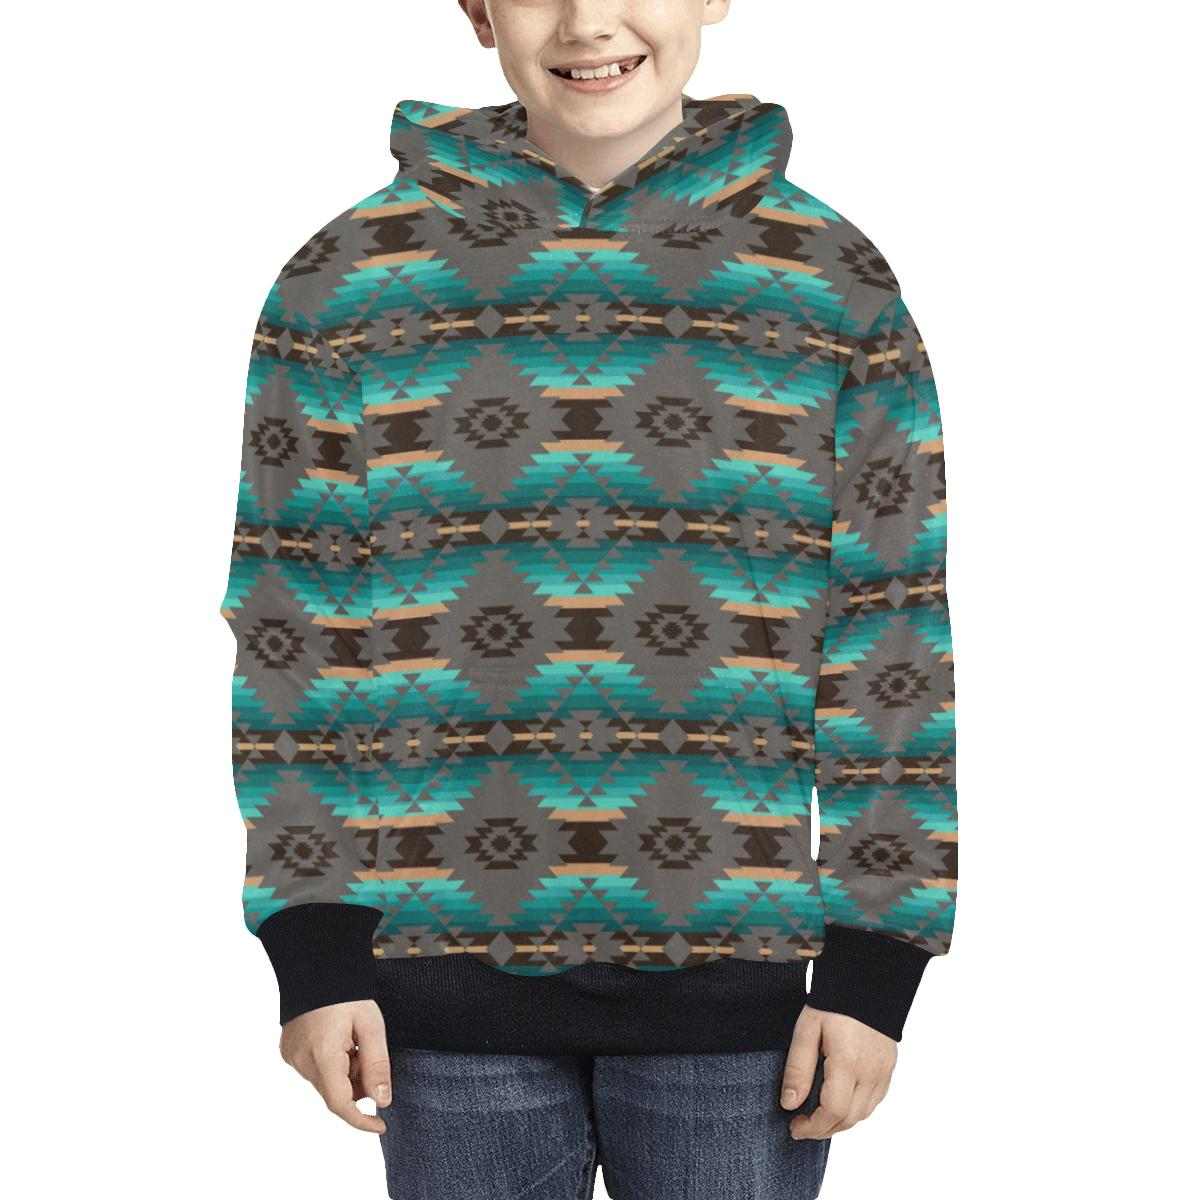 Cree Confederacy Kids' All Over Print Hoodie (Model H38) Kids' AOP Hoodie (H38) e-joyer